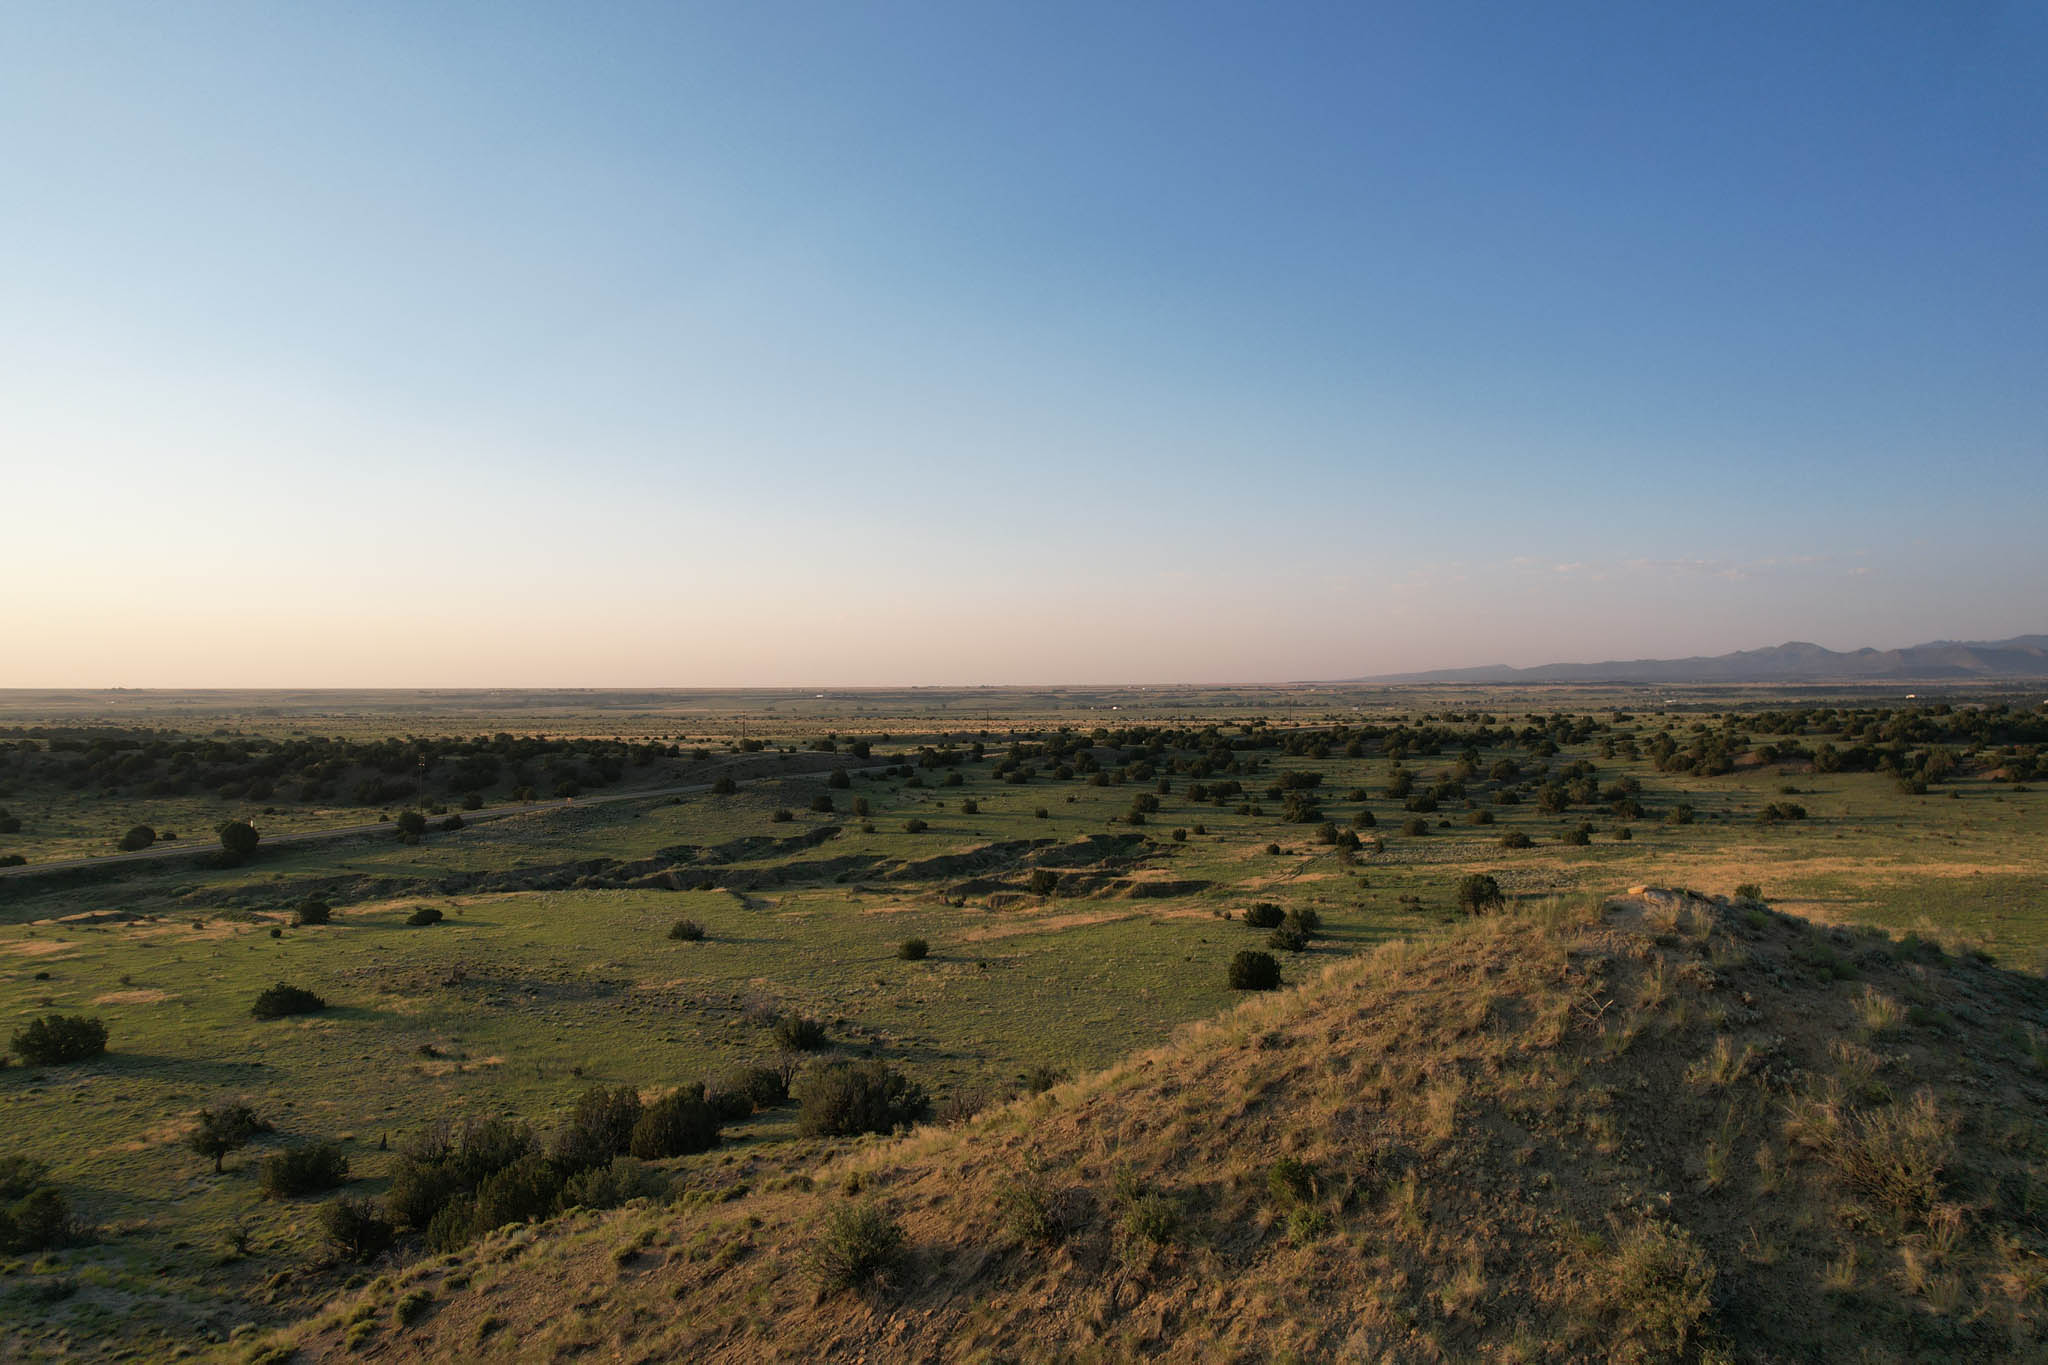 Sun rises in a cloudless sky over green prairie and mountainst